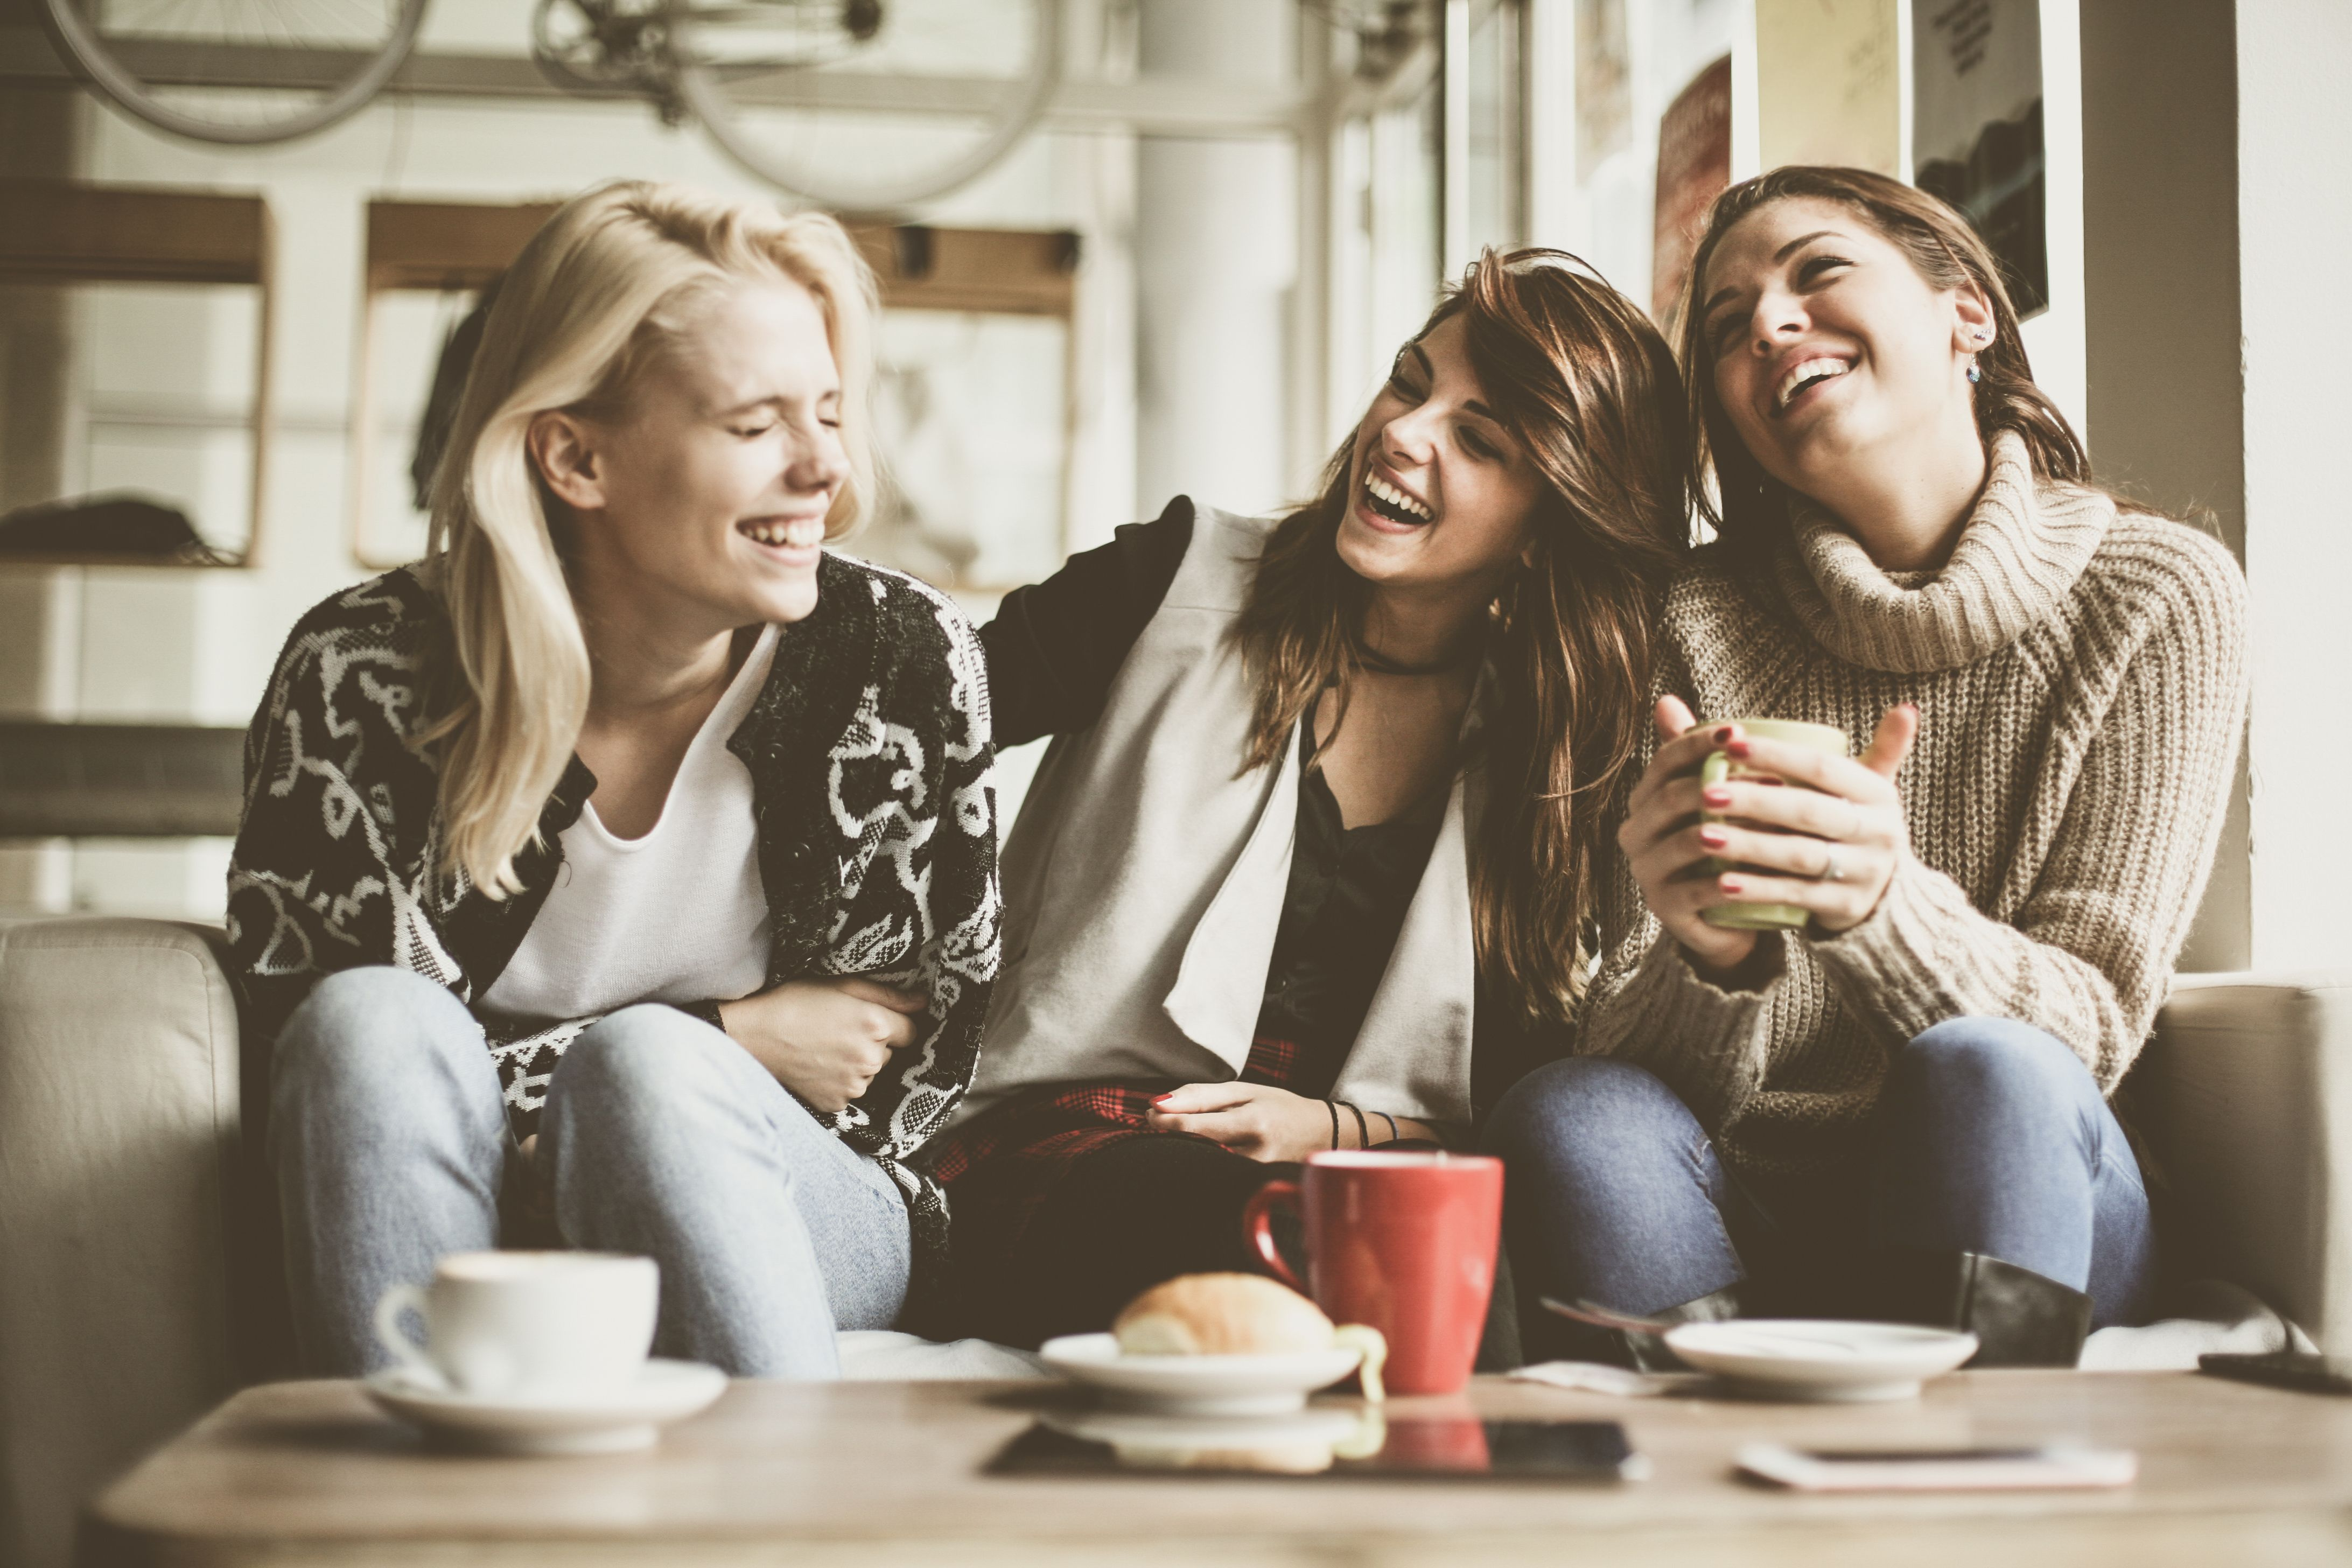 Three women laughing in a cafe